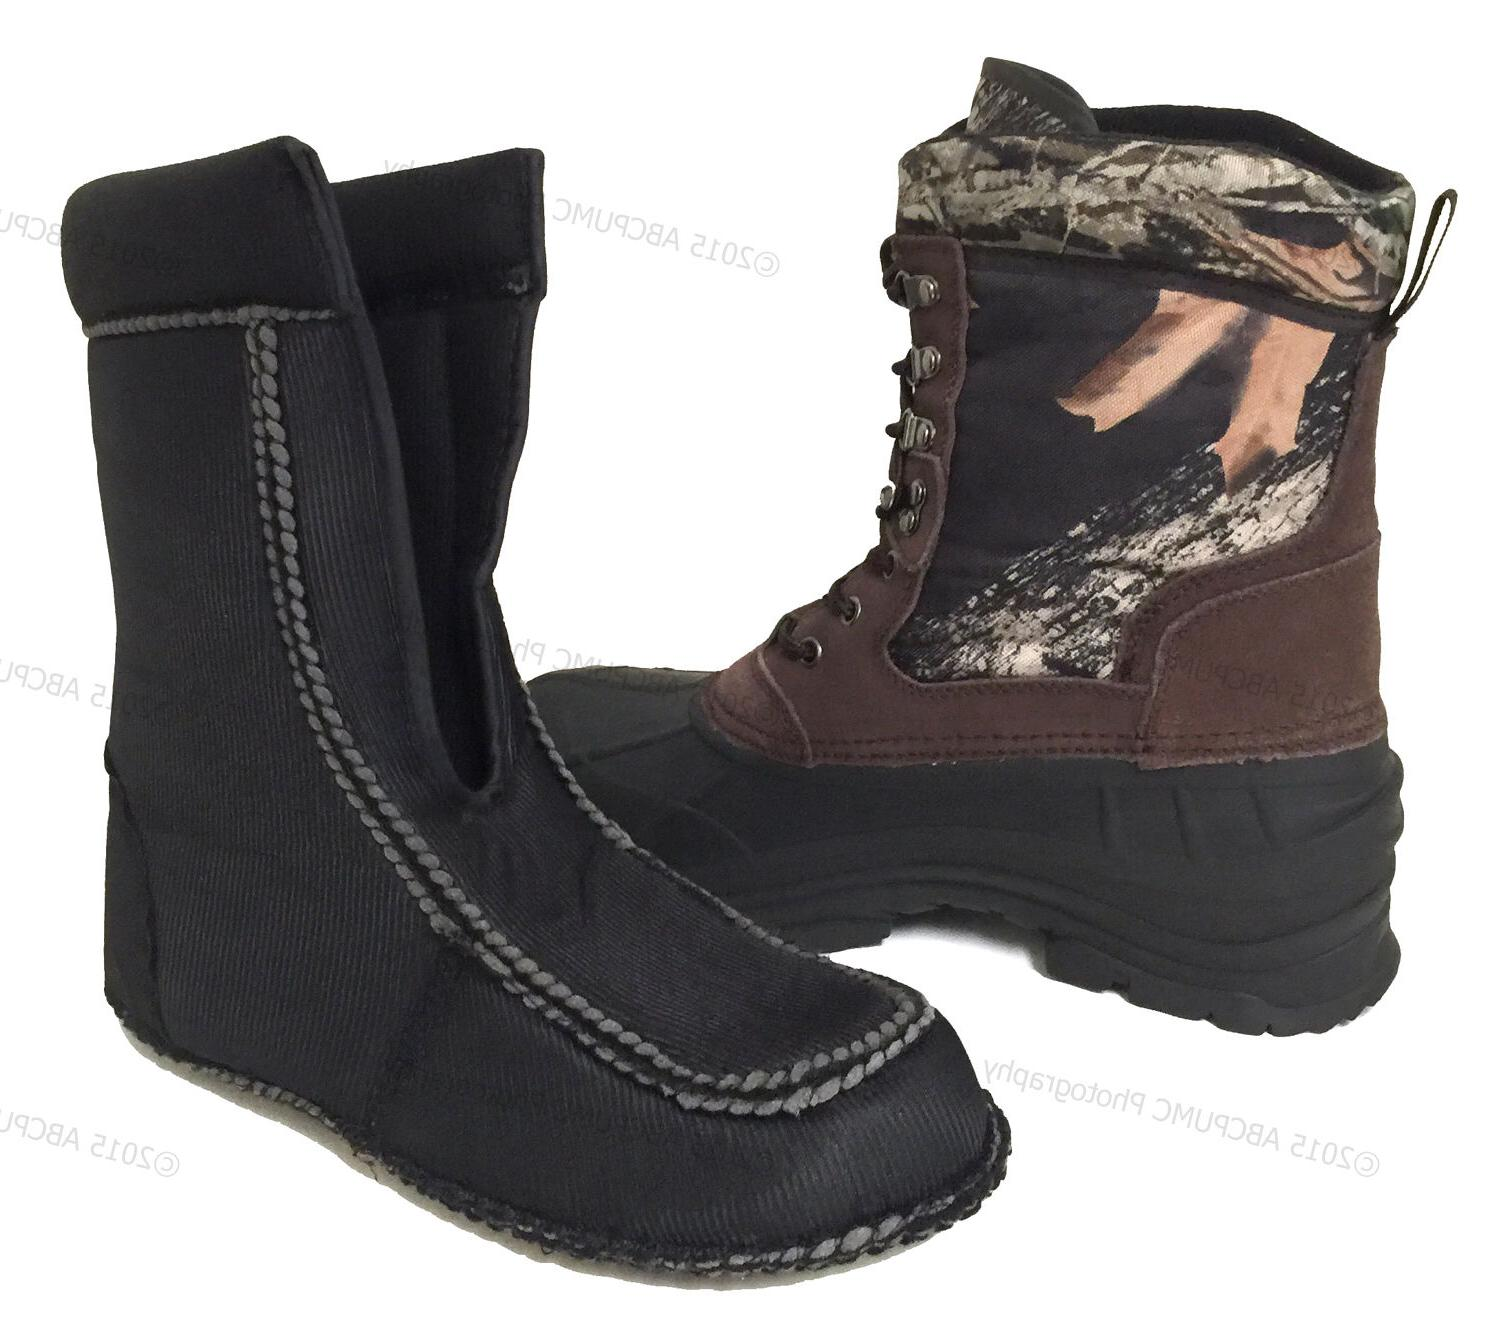 New Boots Camouflage Leather Waterproof Insulated Hunting